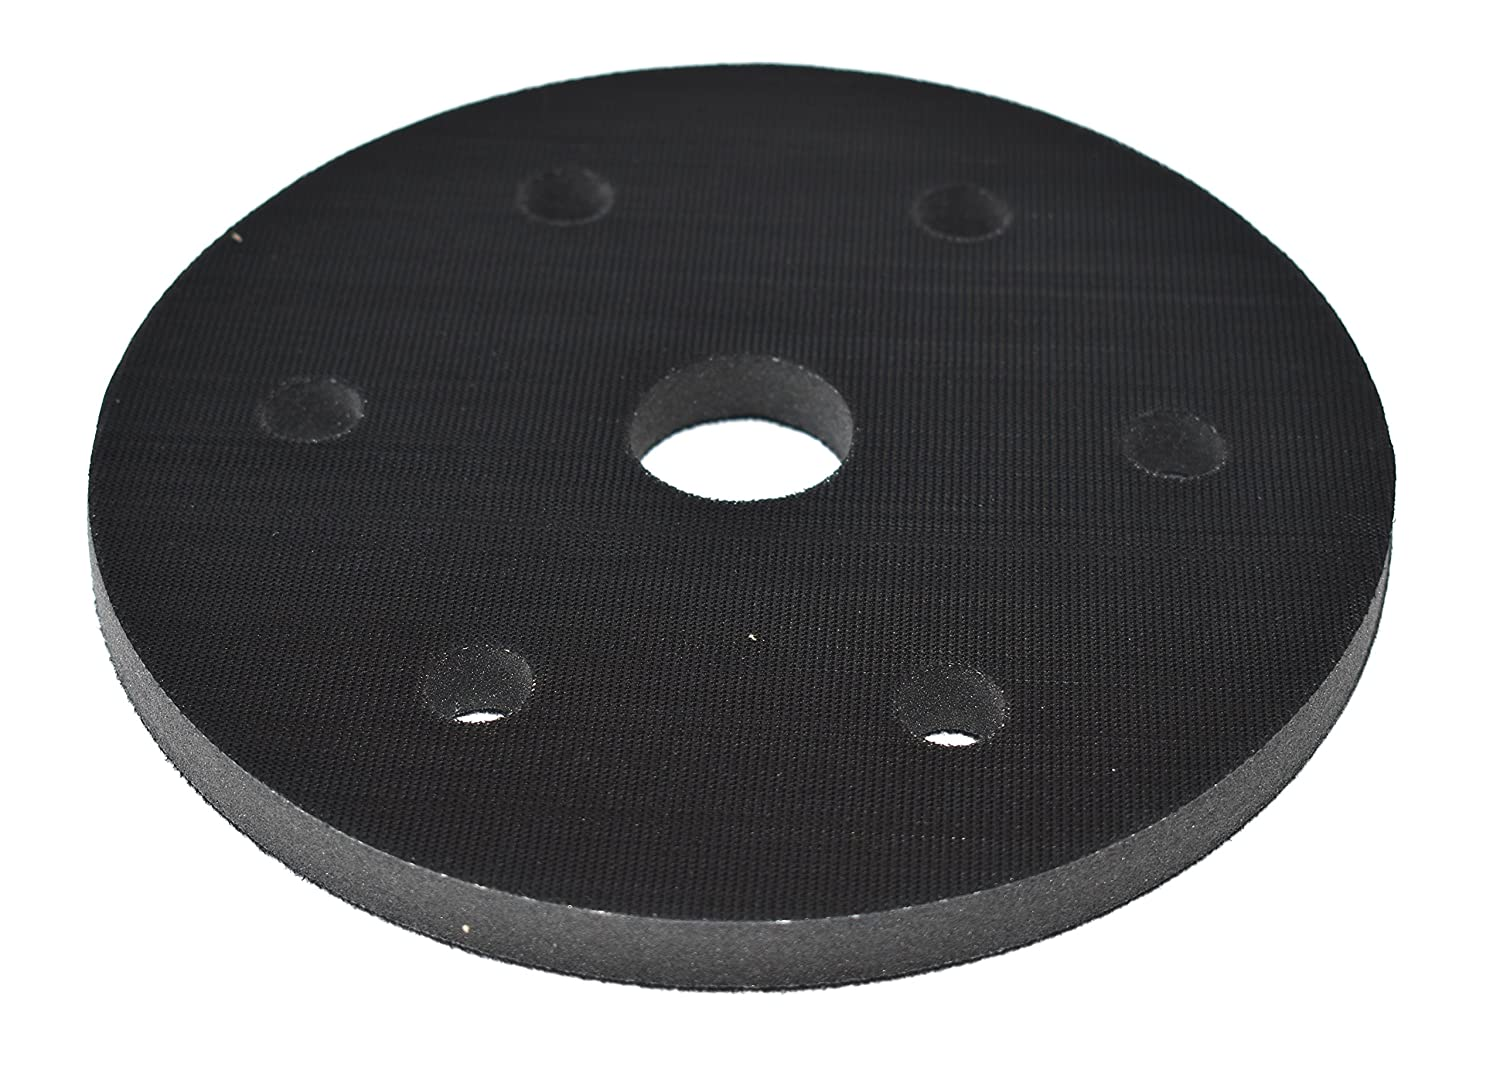 Spare Part - hook and loop backing pad for Drywall Sander/Ceiling Sander (Pad for Menzer LHS 225, LHS 225 VARIO and TBS 225) Stelzen-Shop